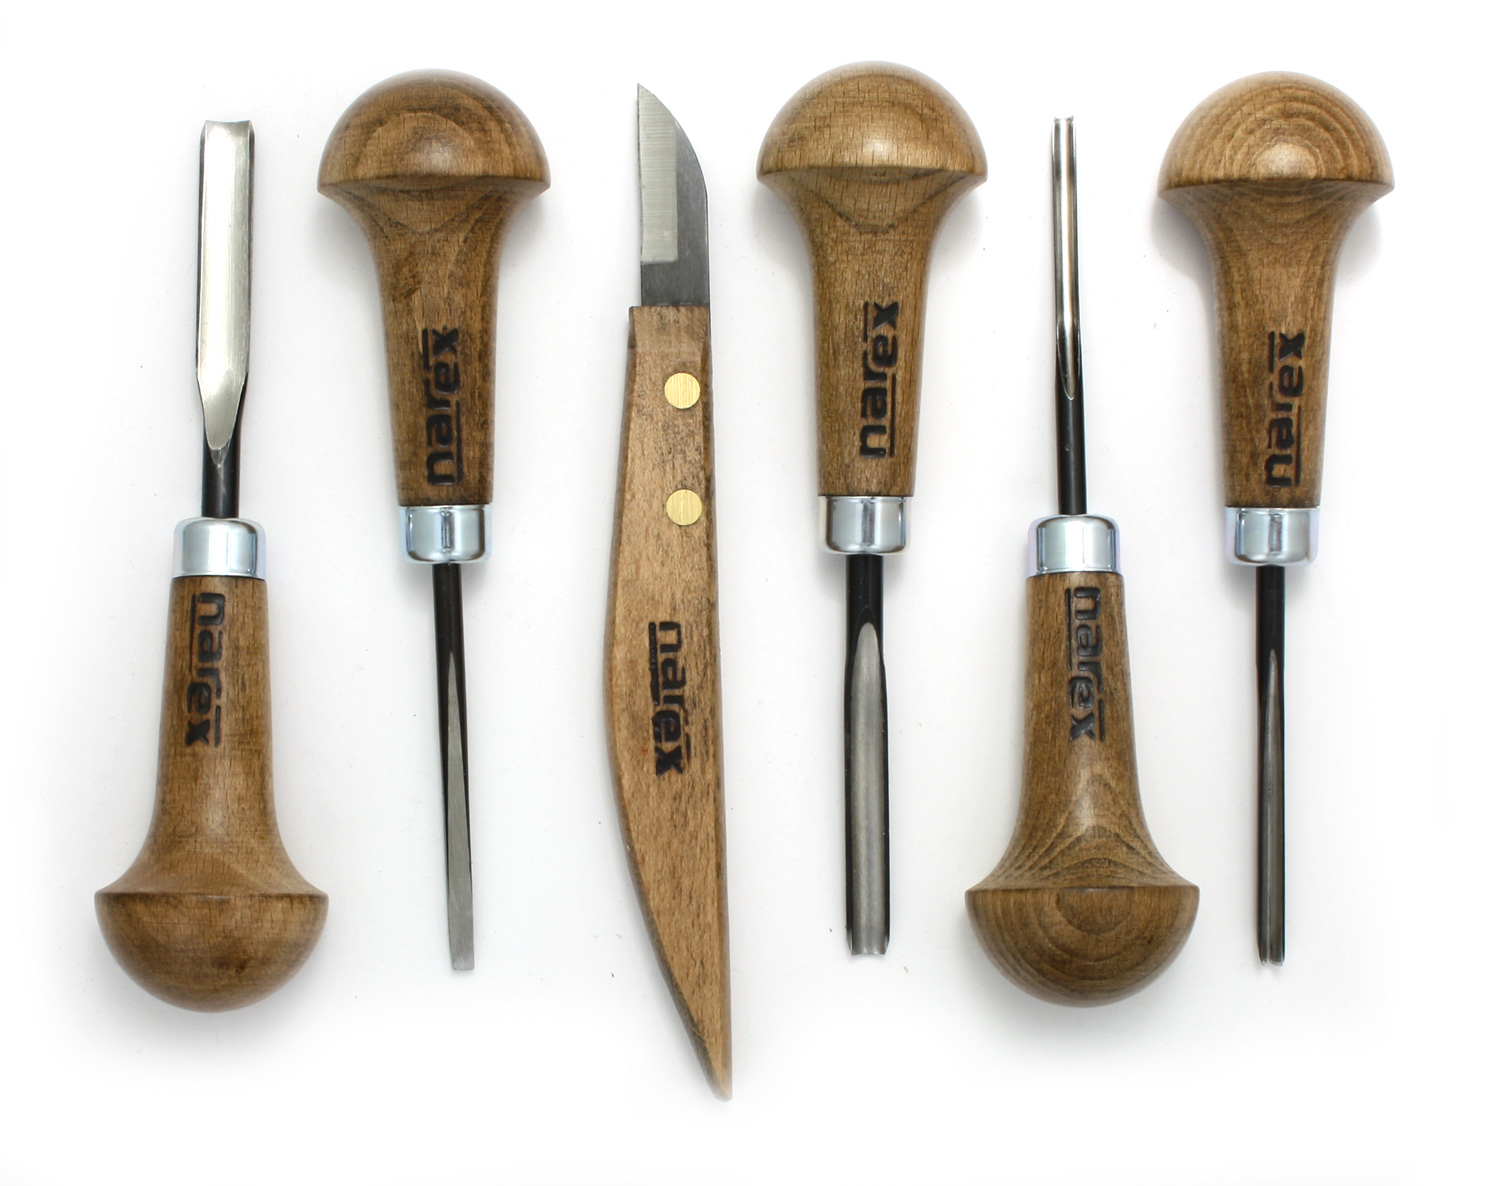 Narex Professional Carving Tools - TOMACO: The Tool ...